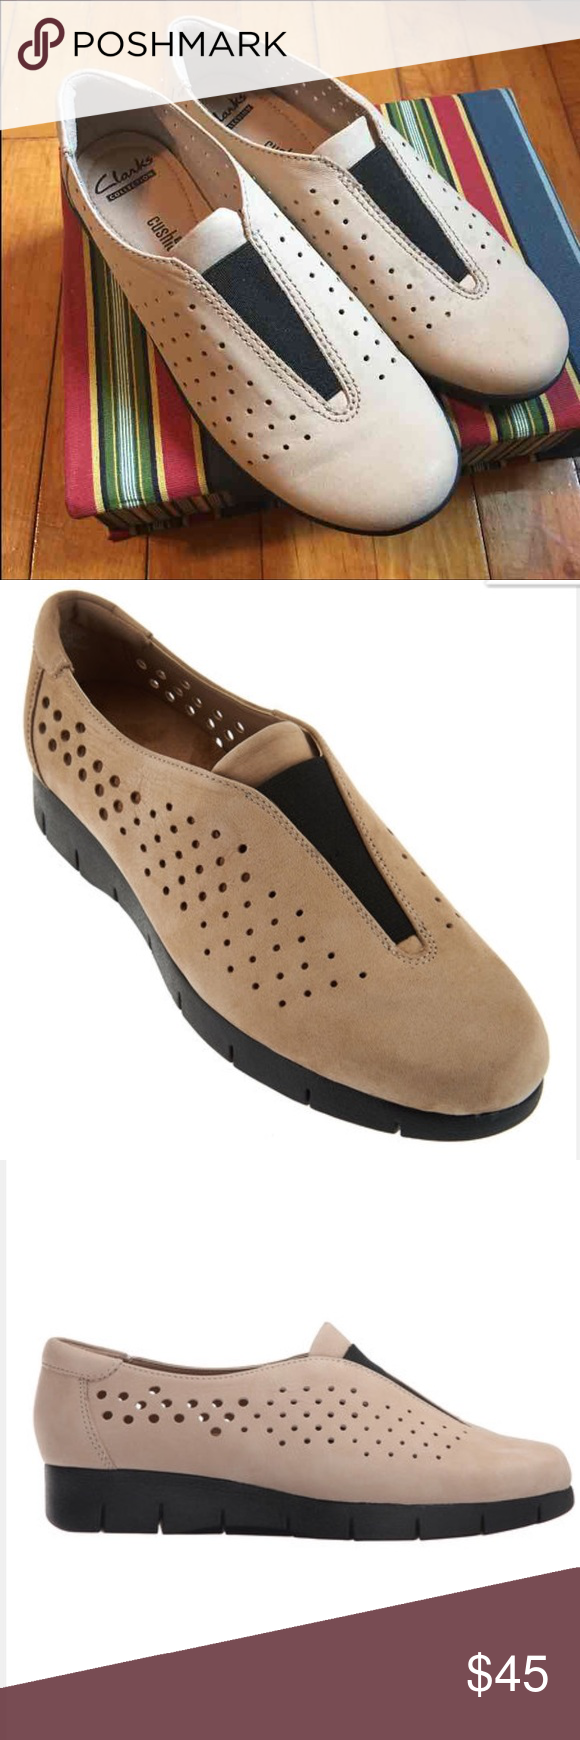 Clarks Sand Daelyn Nubuck Summit Slip-on Equal parts style and comfort, this women's slip-on shoe from the Clarks Collection is modern, streamlined, and easy to wear in perforated microfiber in sand. Soft fabric linings, OrthoLite cushioned footbed, and super lightweight, shock-absorbing EVA outsoles makes it extremely comfortable for fitness walks, errands, or playing with the kids. Clarks Shoes Flats & Loafers